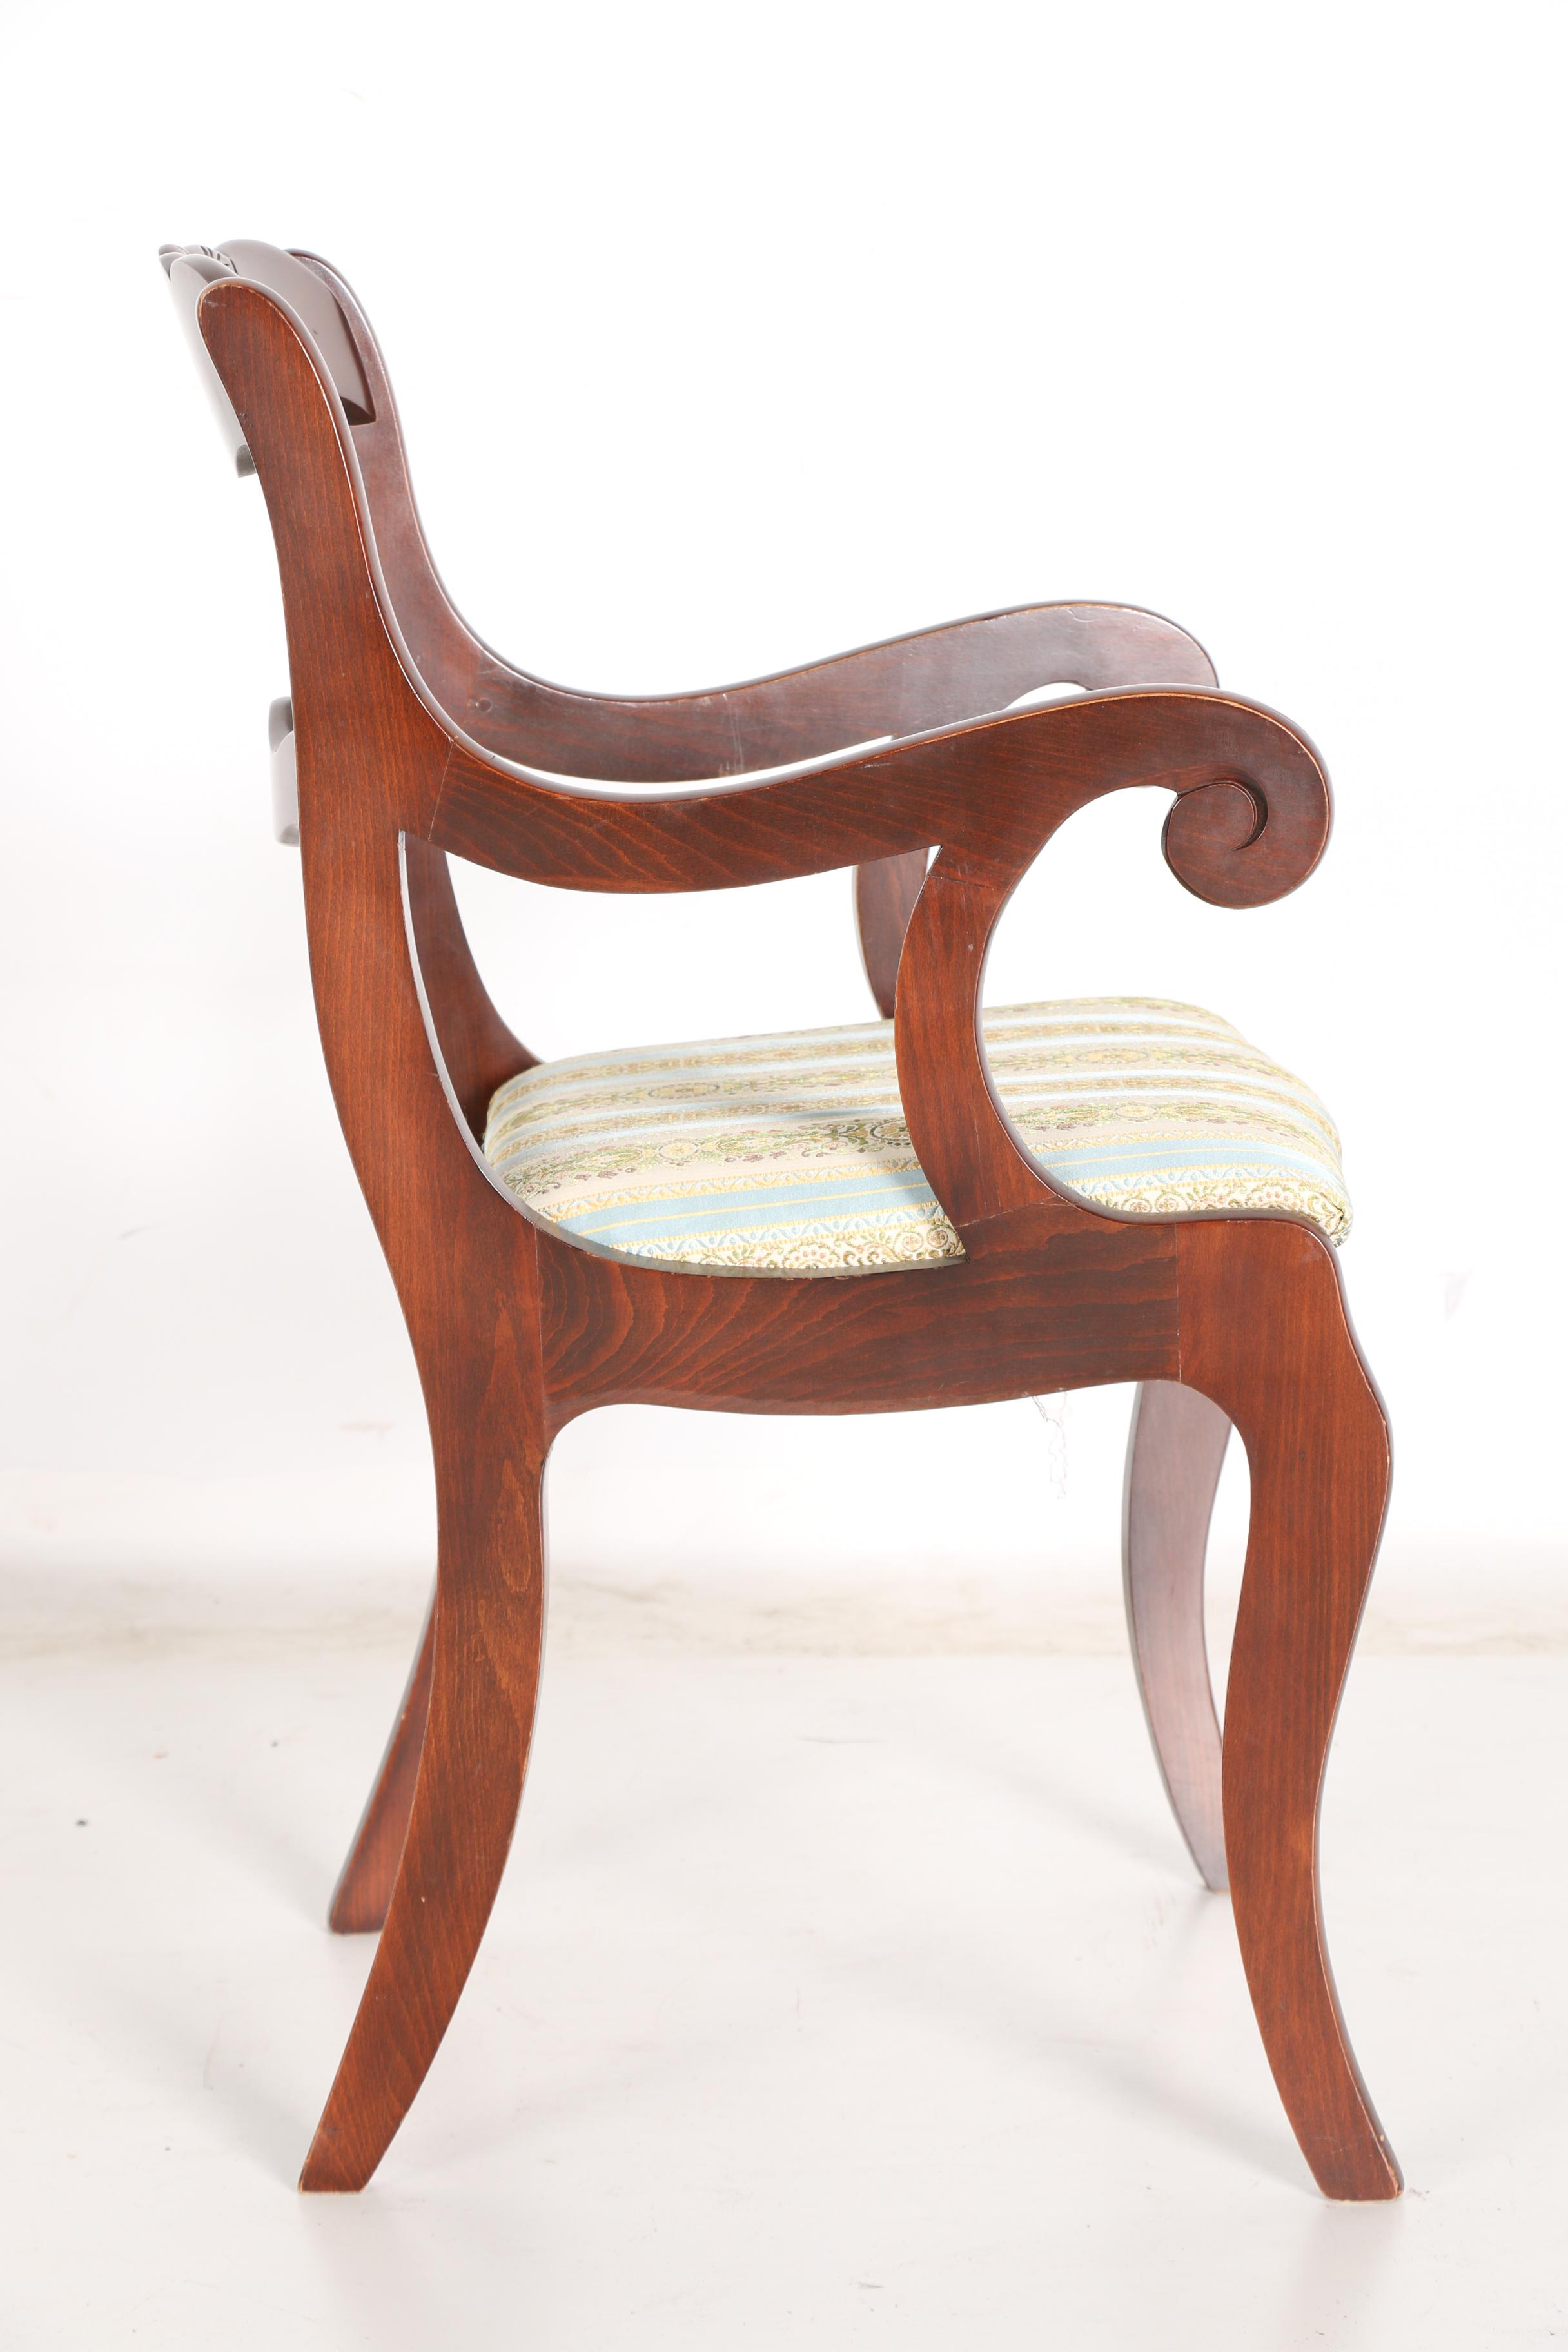 tell city chairs pattern 4222 old people chair lift vintage classical style dining by